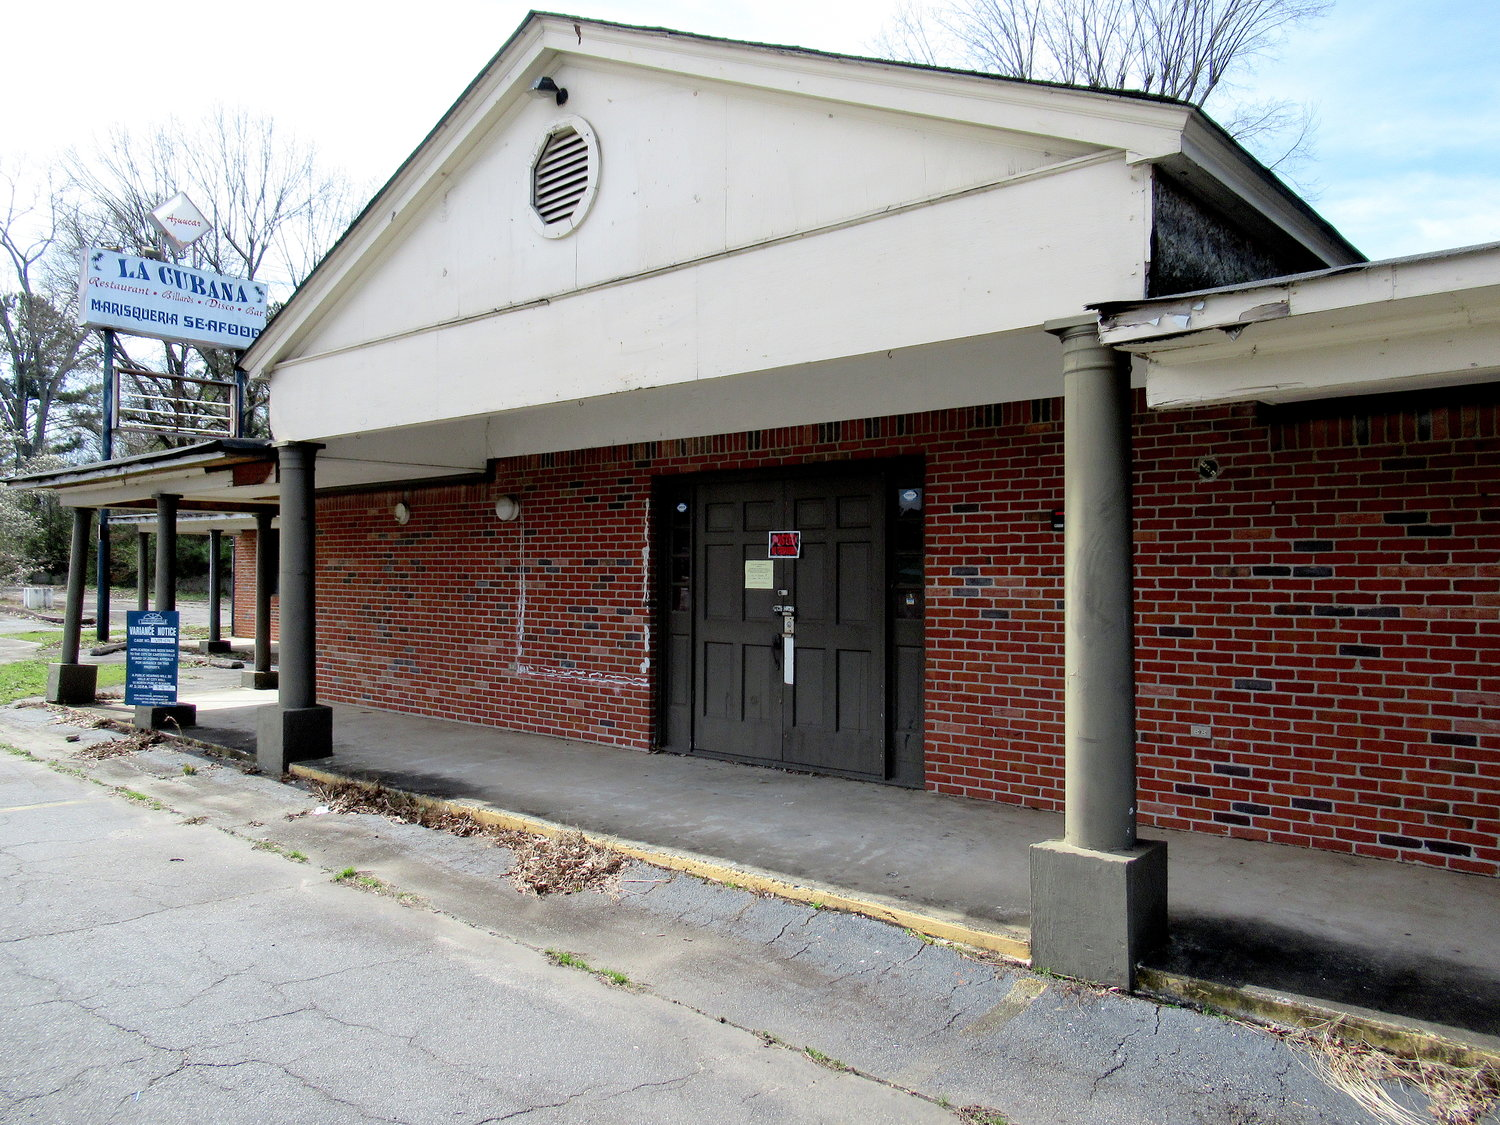 An applicant has expressed interest in constructing a new office building where a longstanding — and long vacant — restaurant space has sat unoccupied off Tennessee Street for several years.